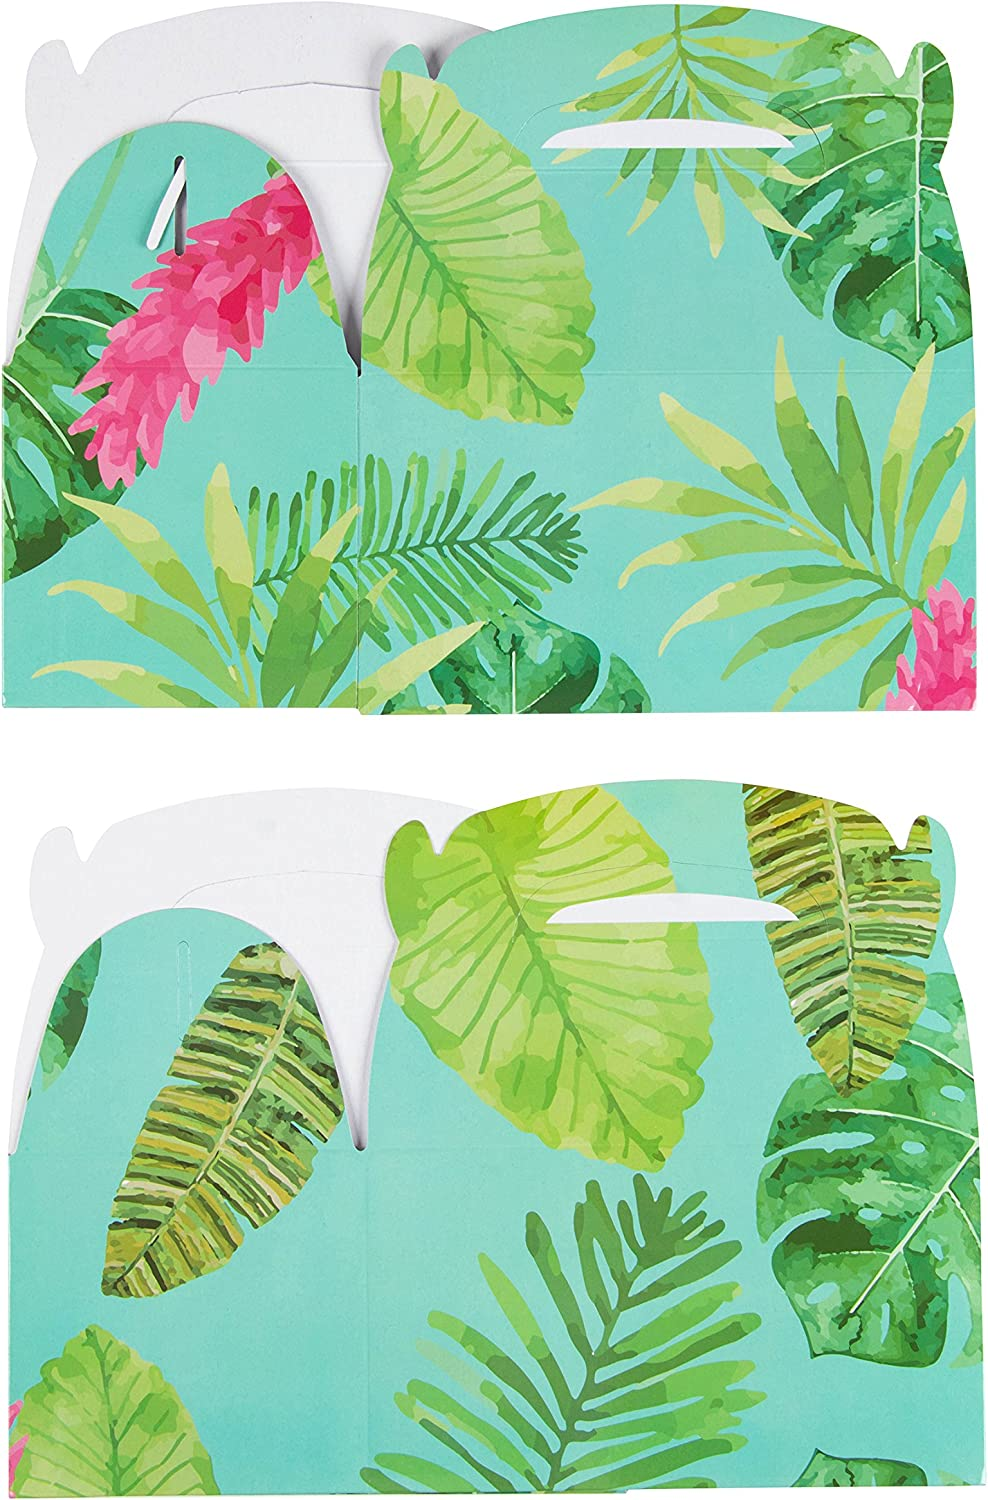 24-Pack Paper Party Favor Boxes 6 x 3.3 x 3.6 inches Tropical Floral Design Goodie Boxes for Birthdays and Events 2 Dozen Party Gable Boxes Treat Boxes